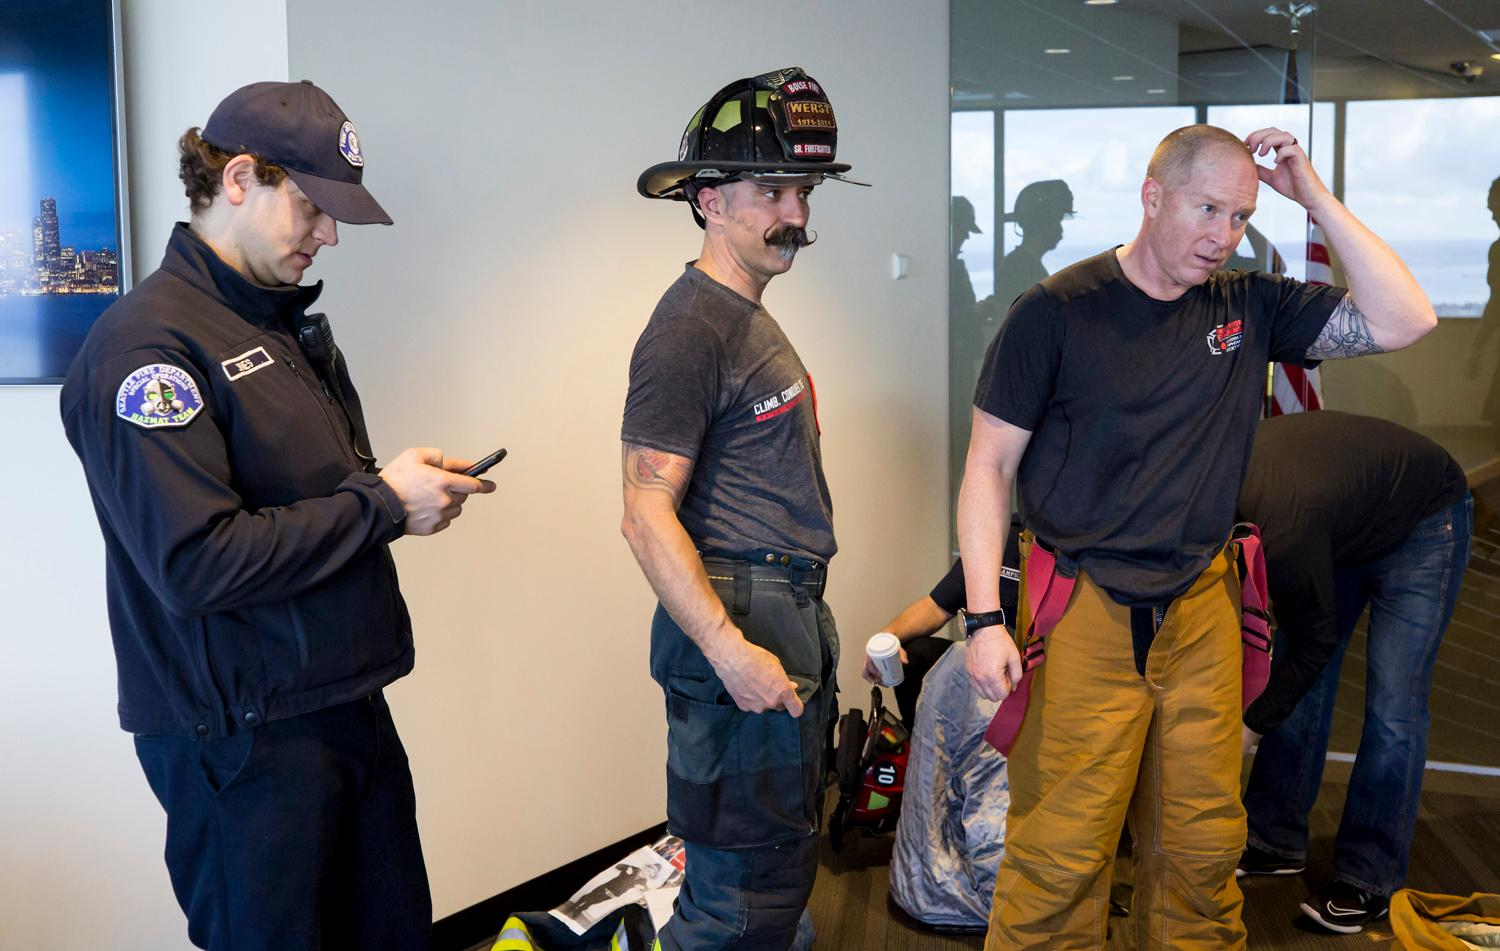 Rich Brown, center, and Dave O'Connor, both firefighters from Boise, Idaho, take a breather after completing a training climb for the 27th annual Scott Firefight Stairclimb that benefits the Leukemia & Lymphoma Society. 2,000 firefighters will climb the 69 floors (1,356 stairs!) on Sunday to Sky View Observatory of the Columbia Tower. To donate to this cause, please visit www.firefighterstairclimb.org. (Sy Bean / Seattle Refined)